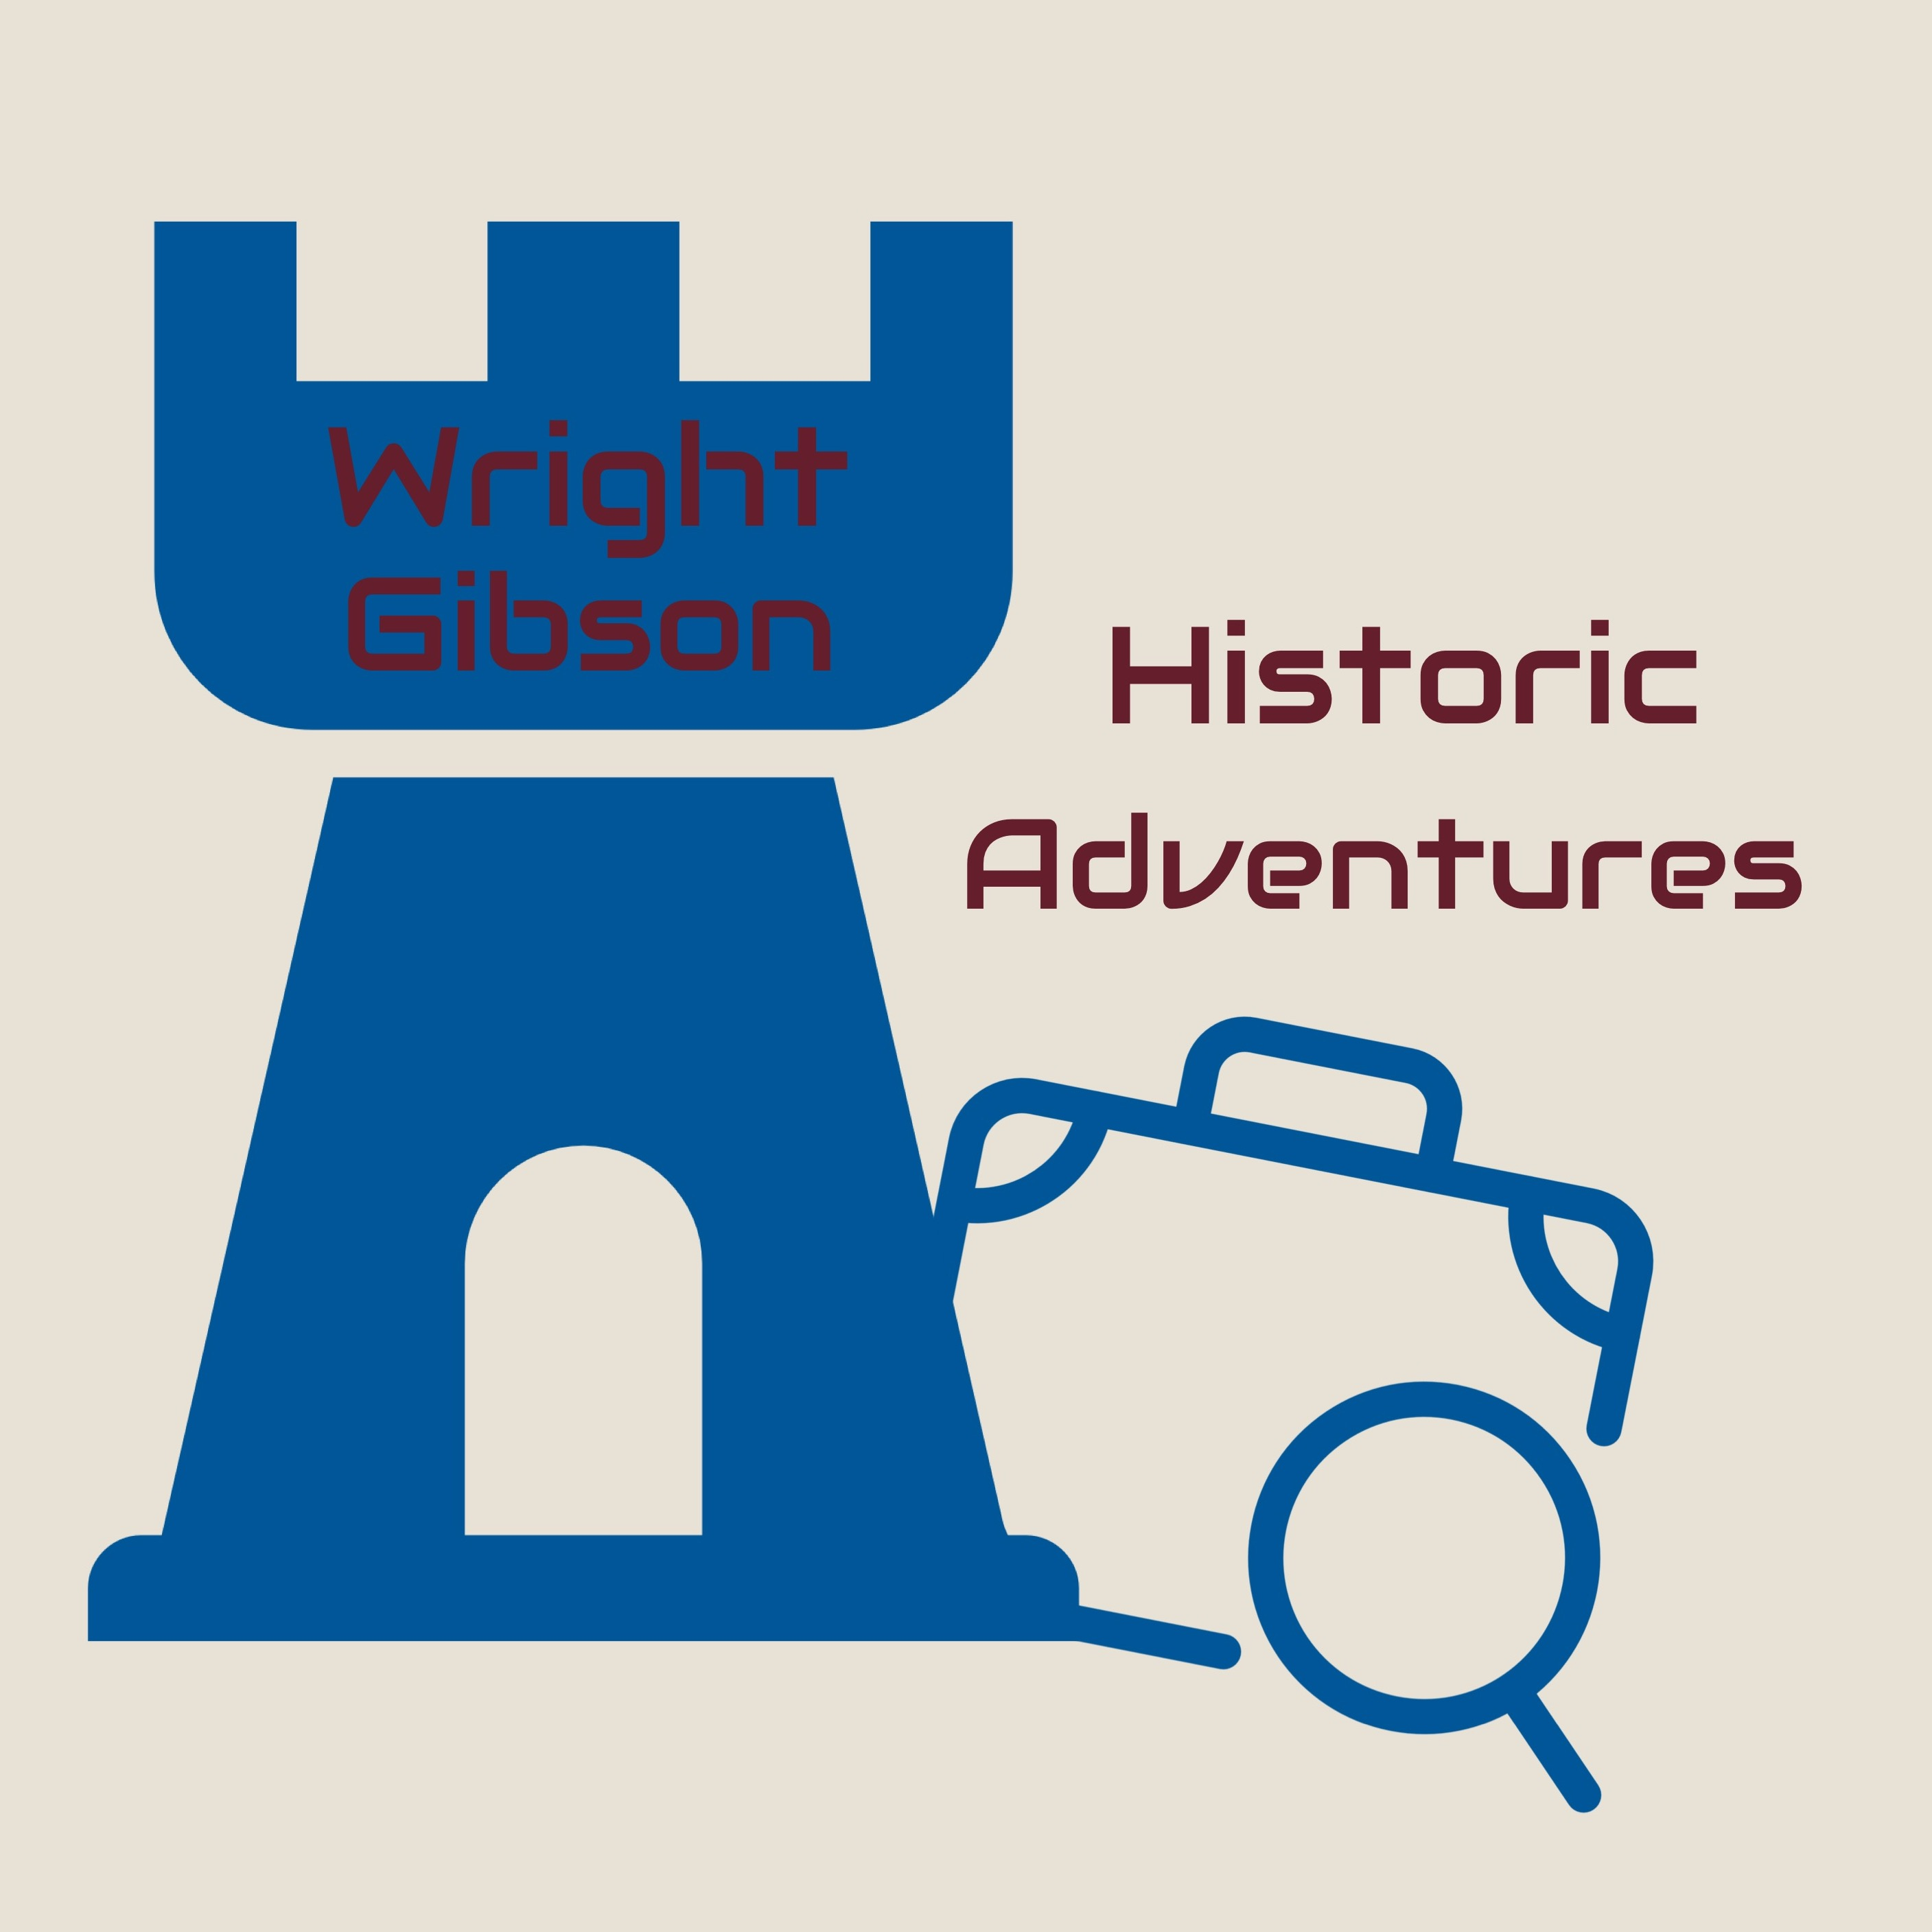 Wright Gibson Historic Adventures logo featuring a castle and suitcase icon